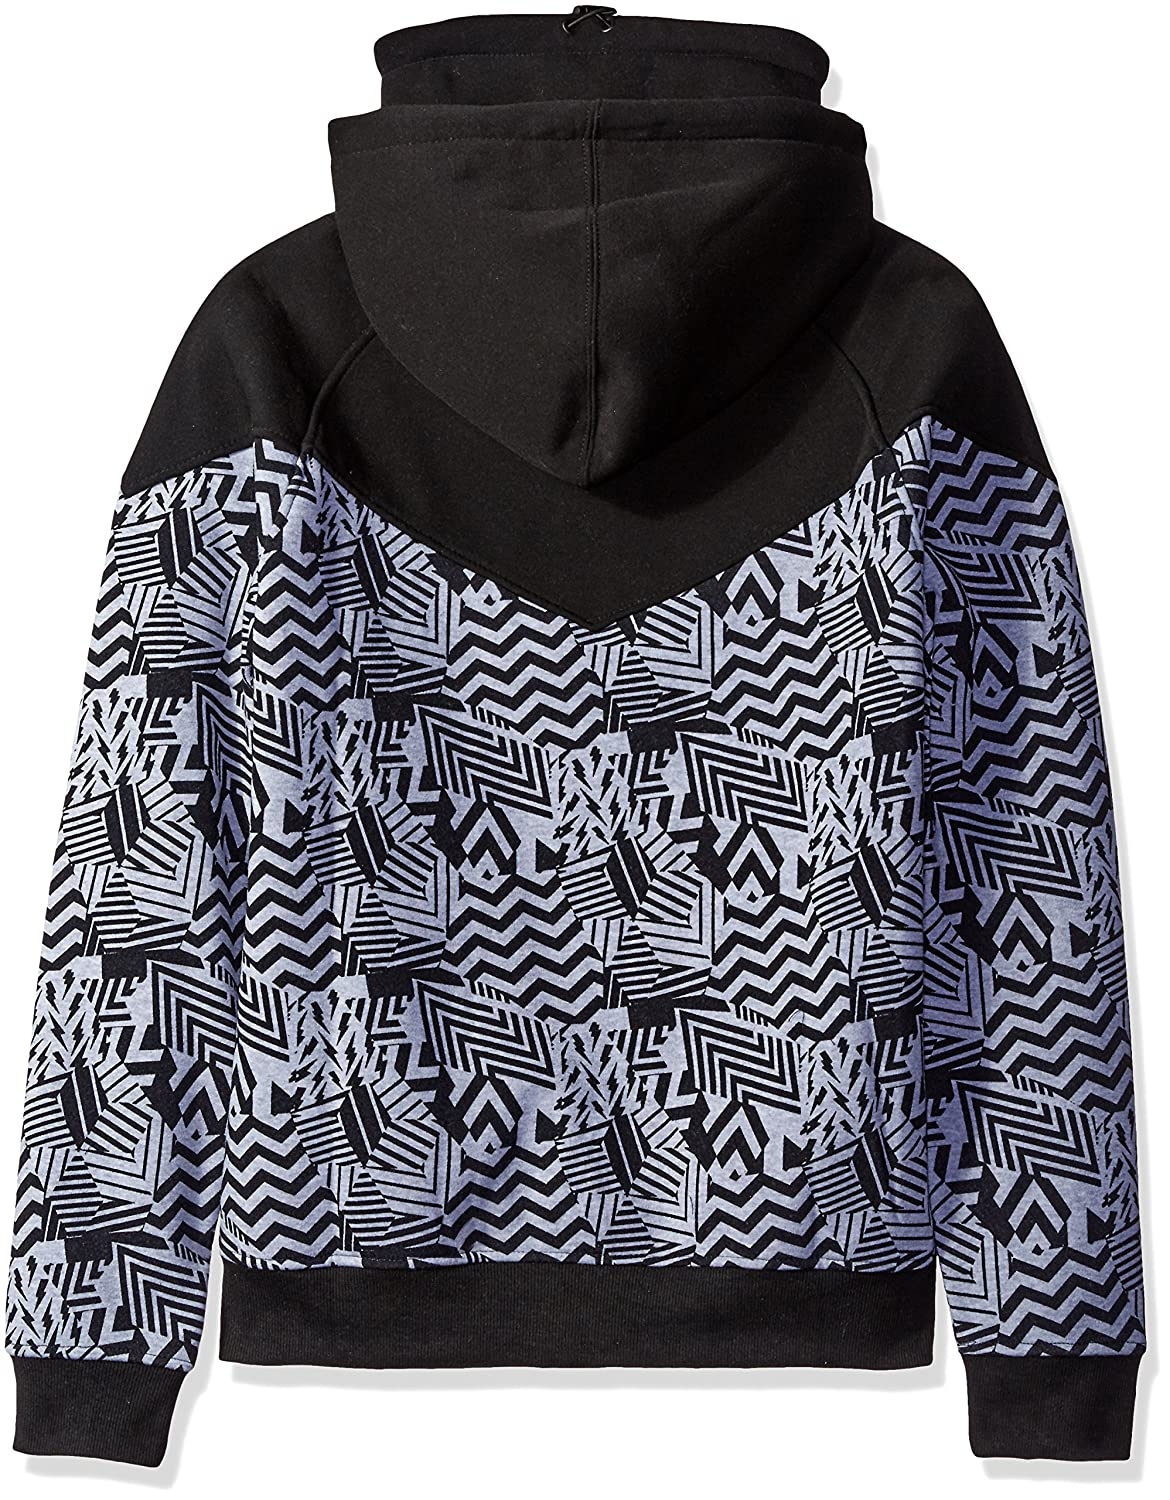 Southpole Mens Long Sleeve Fleece Hooded Ninja Neck Full Zip with Color Block All Over Prints